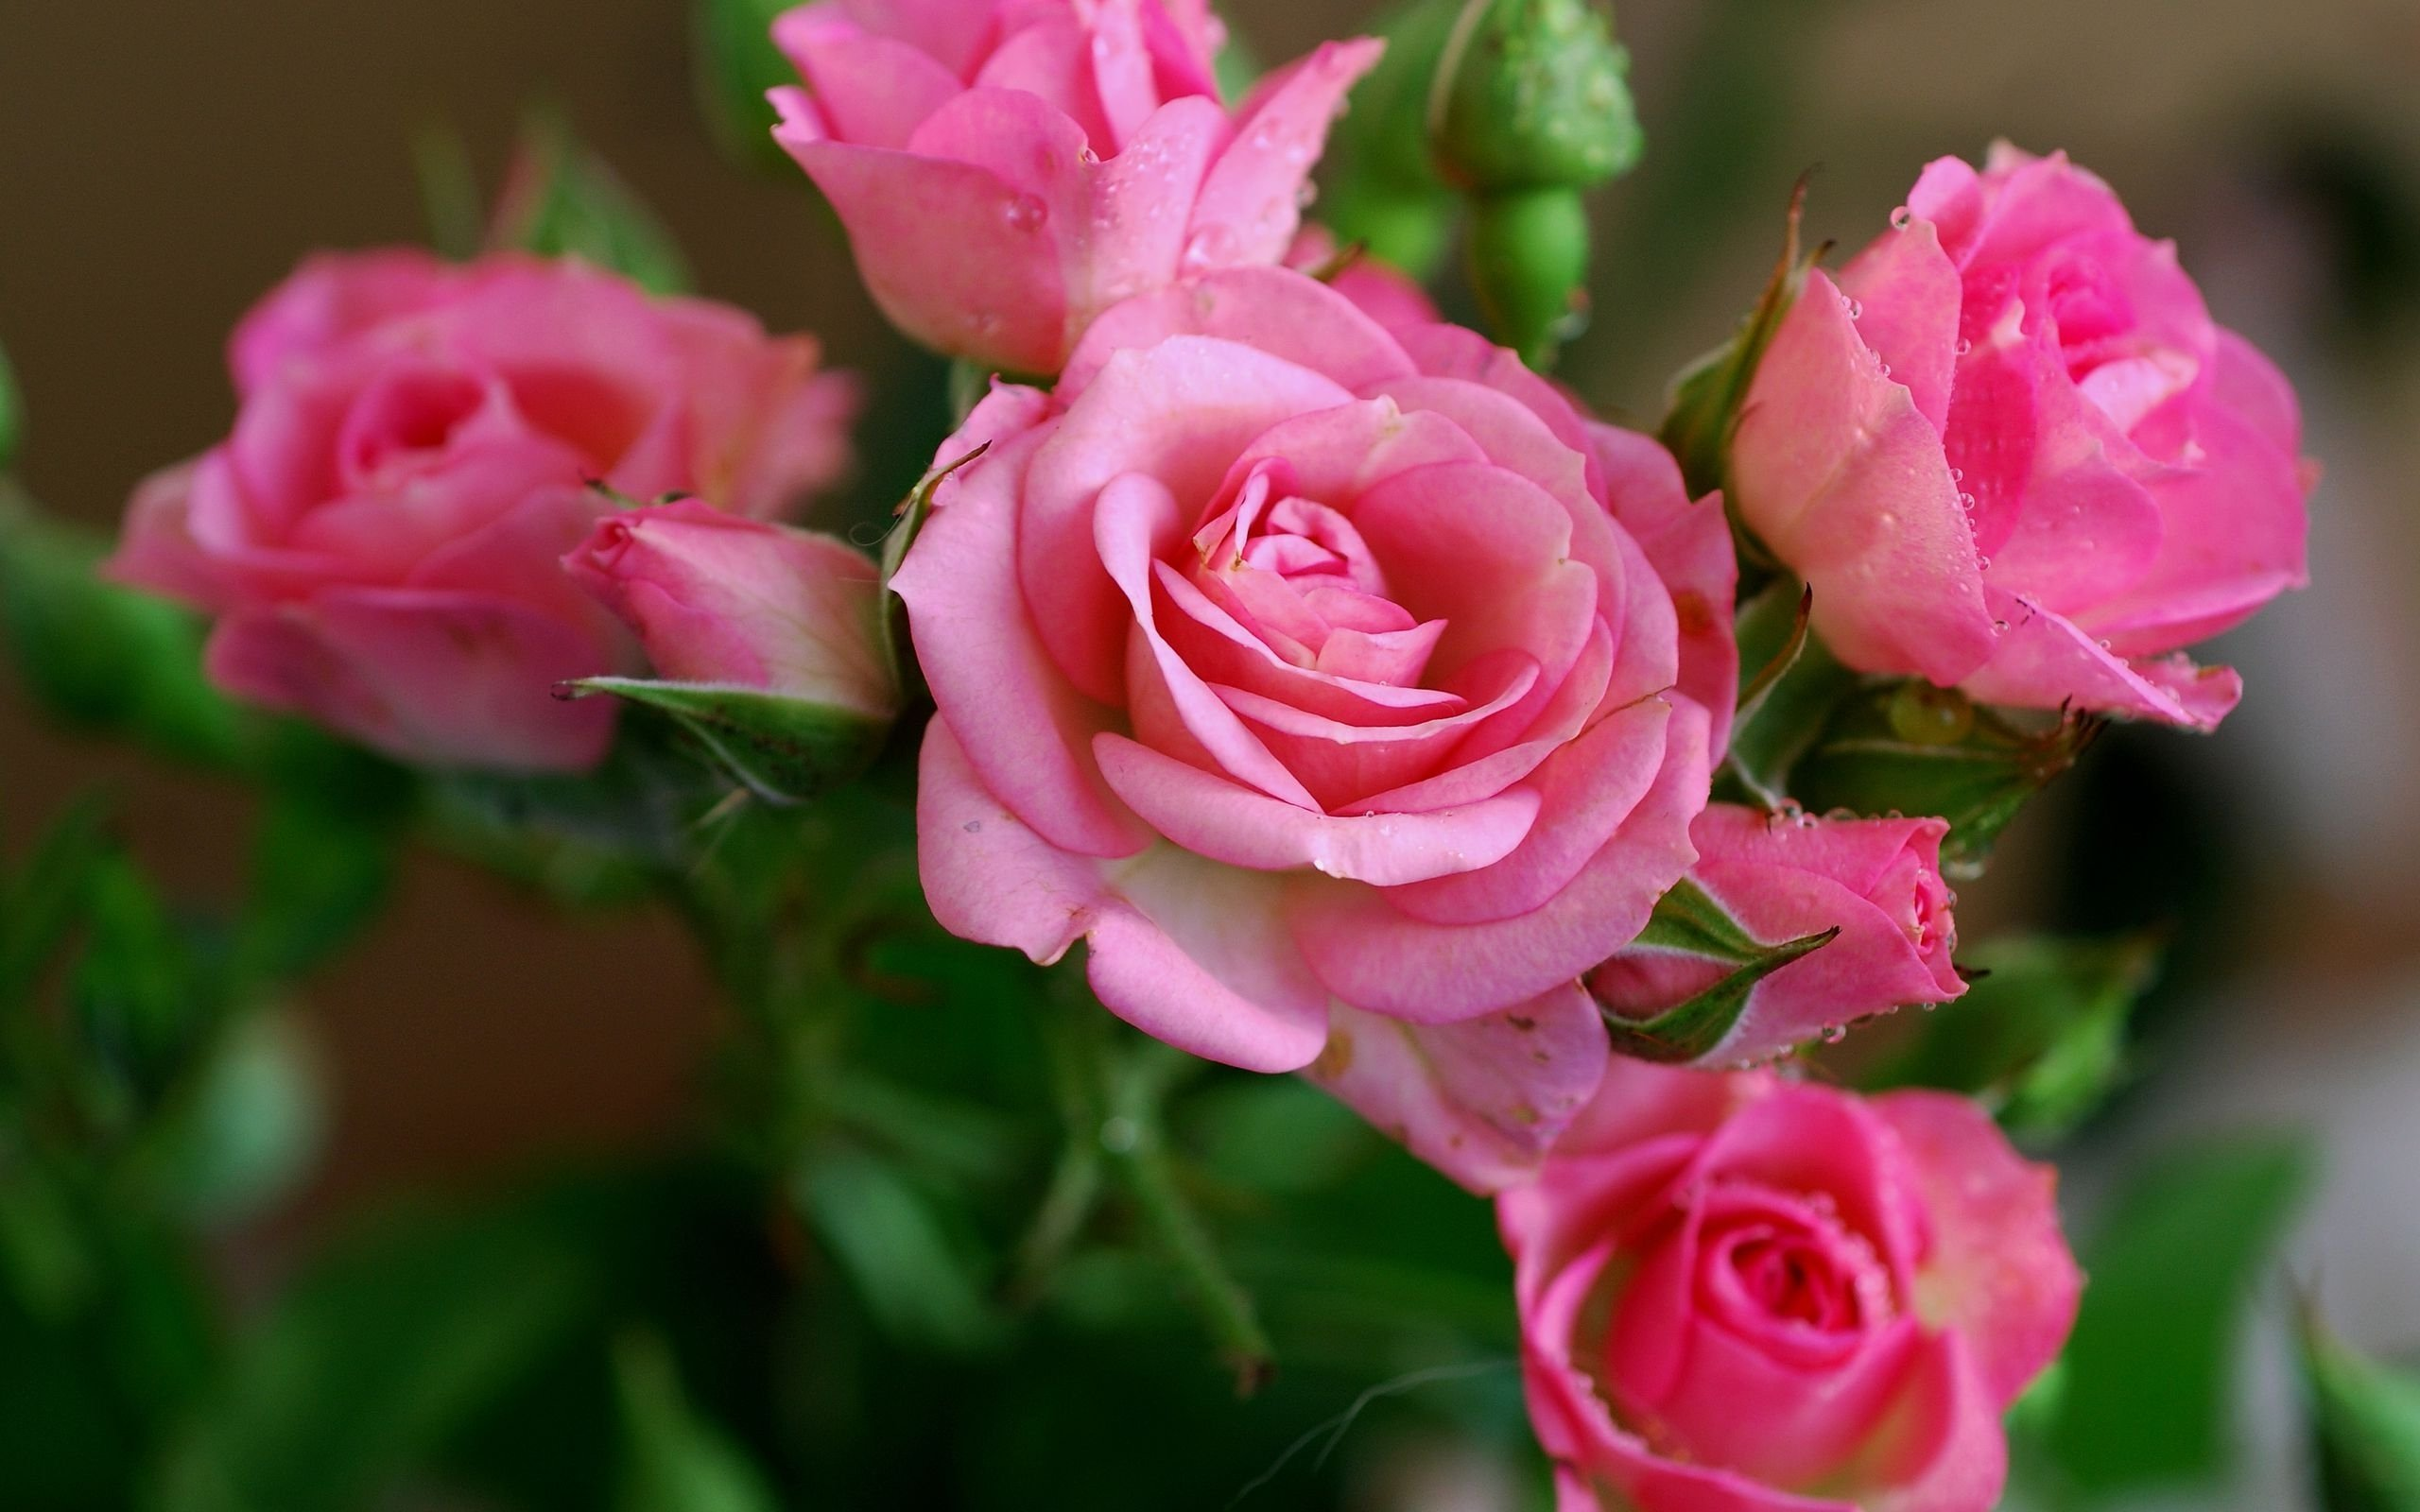 Pink rose flowers Nature wallpapers download HD Wallpapers for 2560x1600